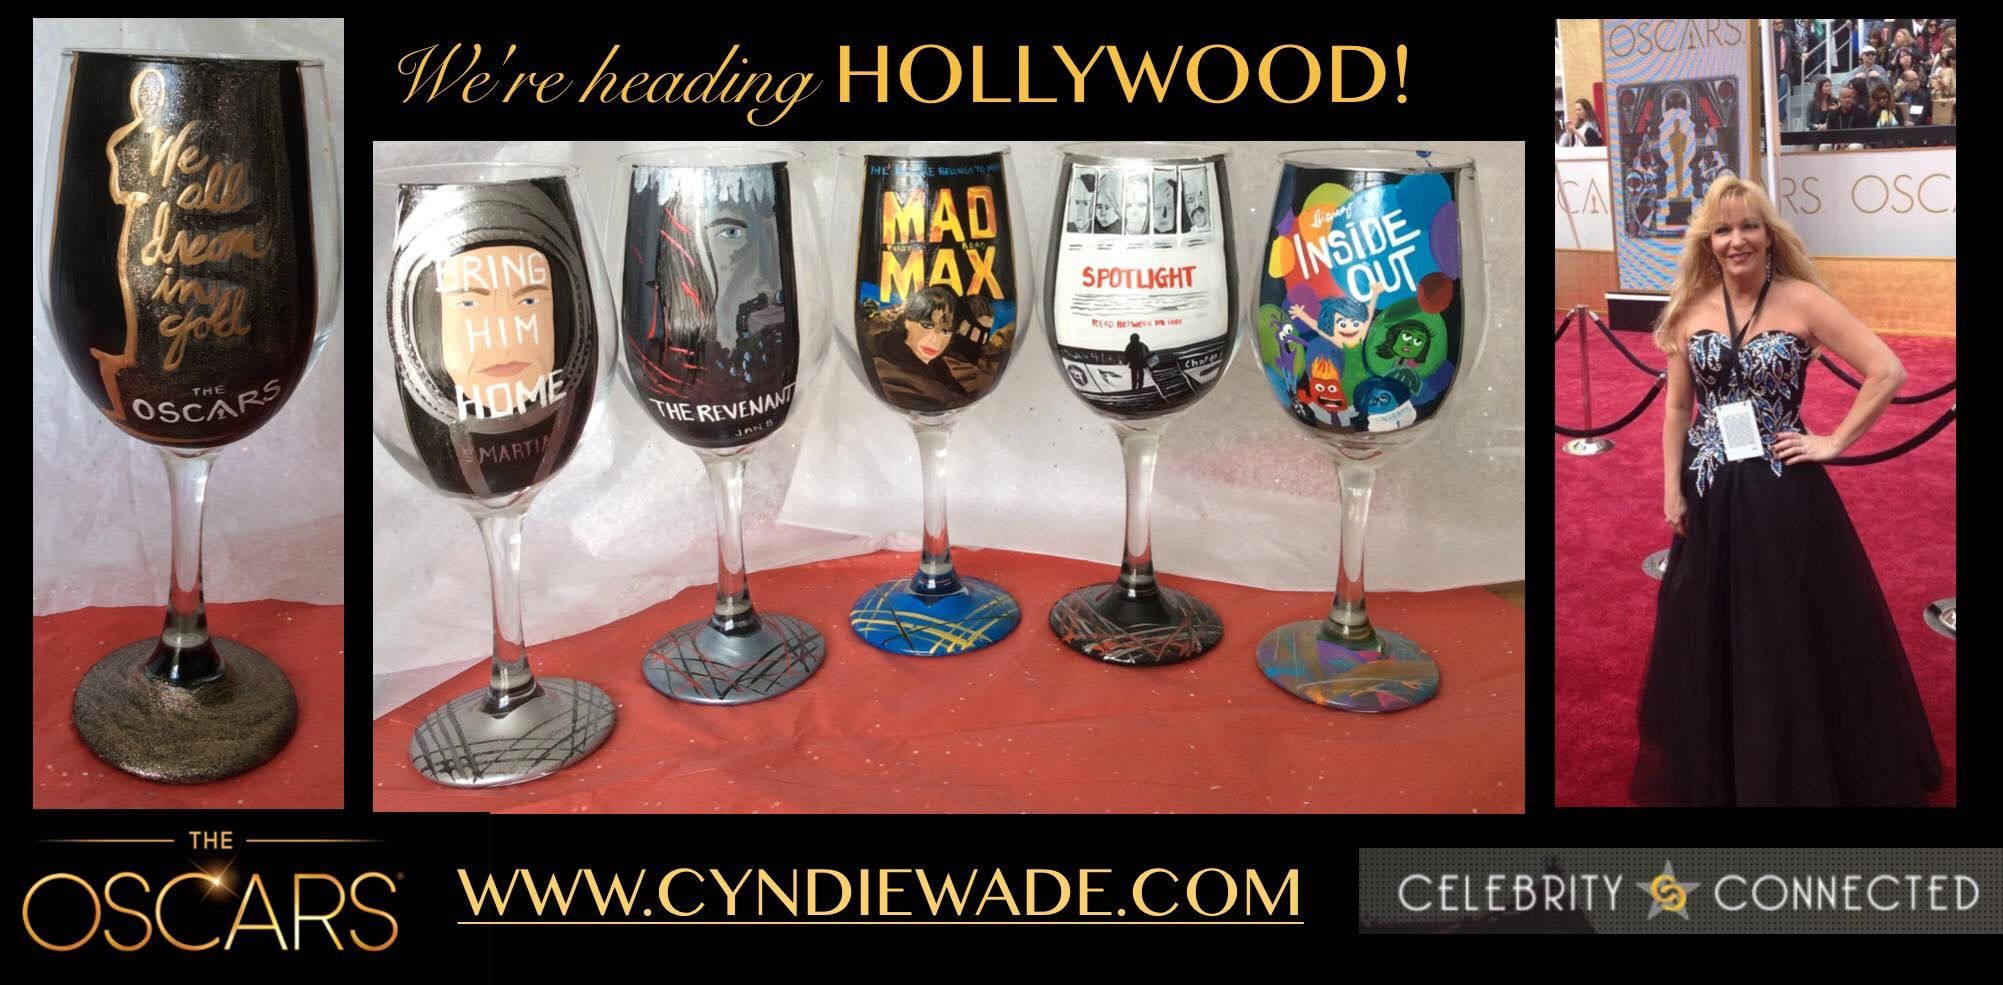 Pin On Celebrities Love Www Cyndiewade Com Caricature Wine Glasses And Caricature Beer Mugs